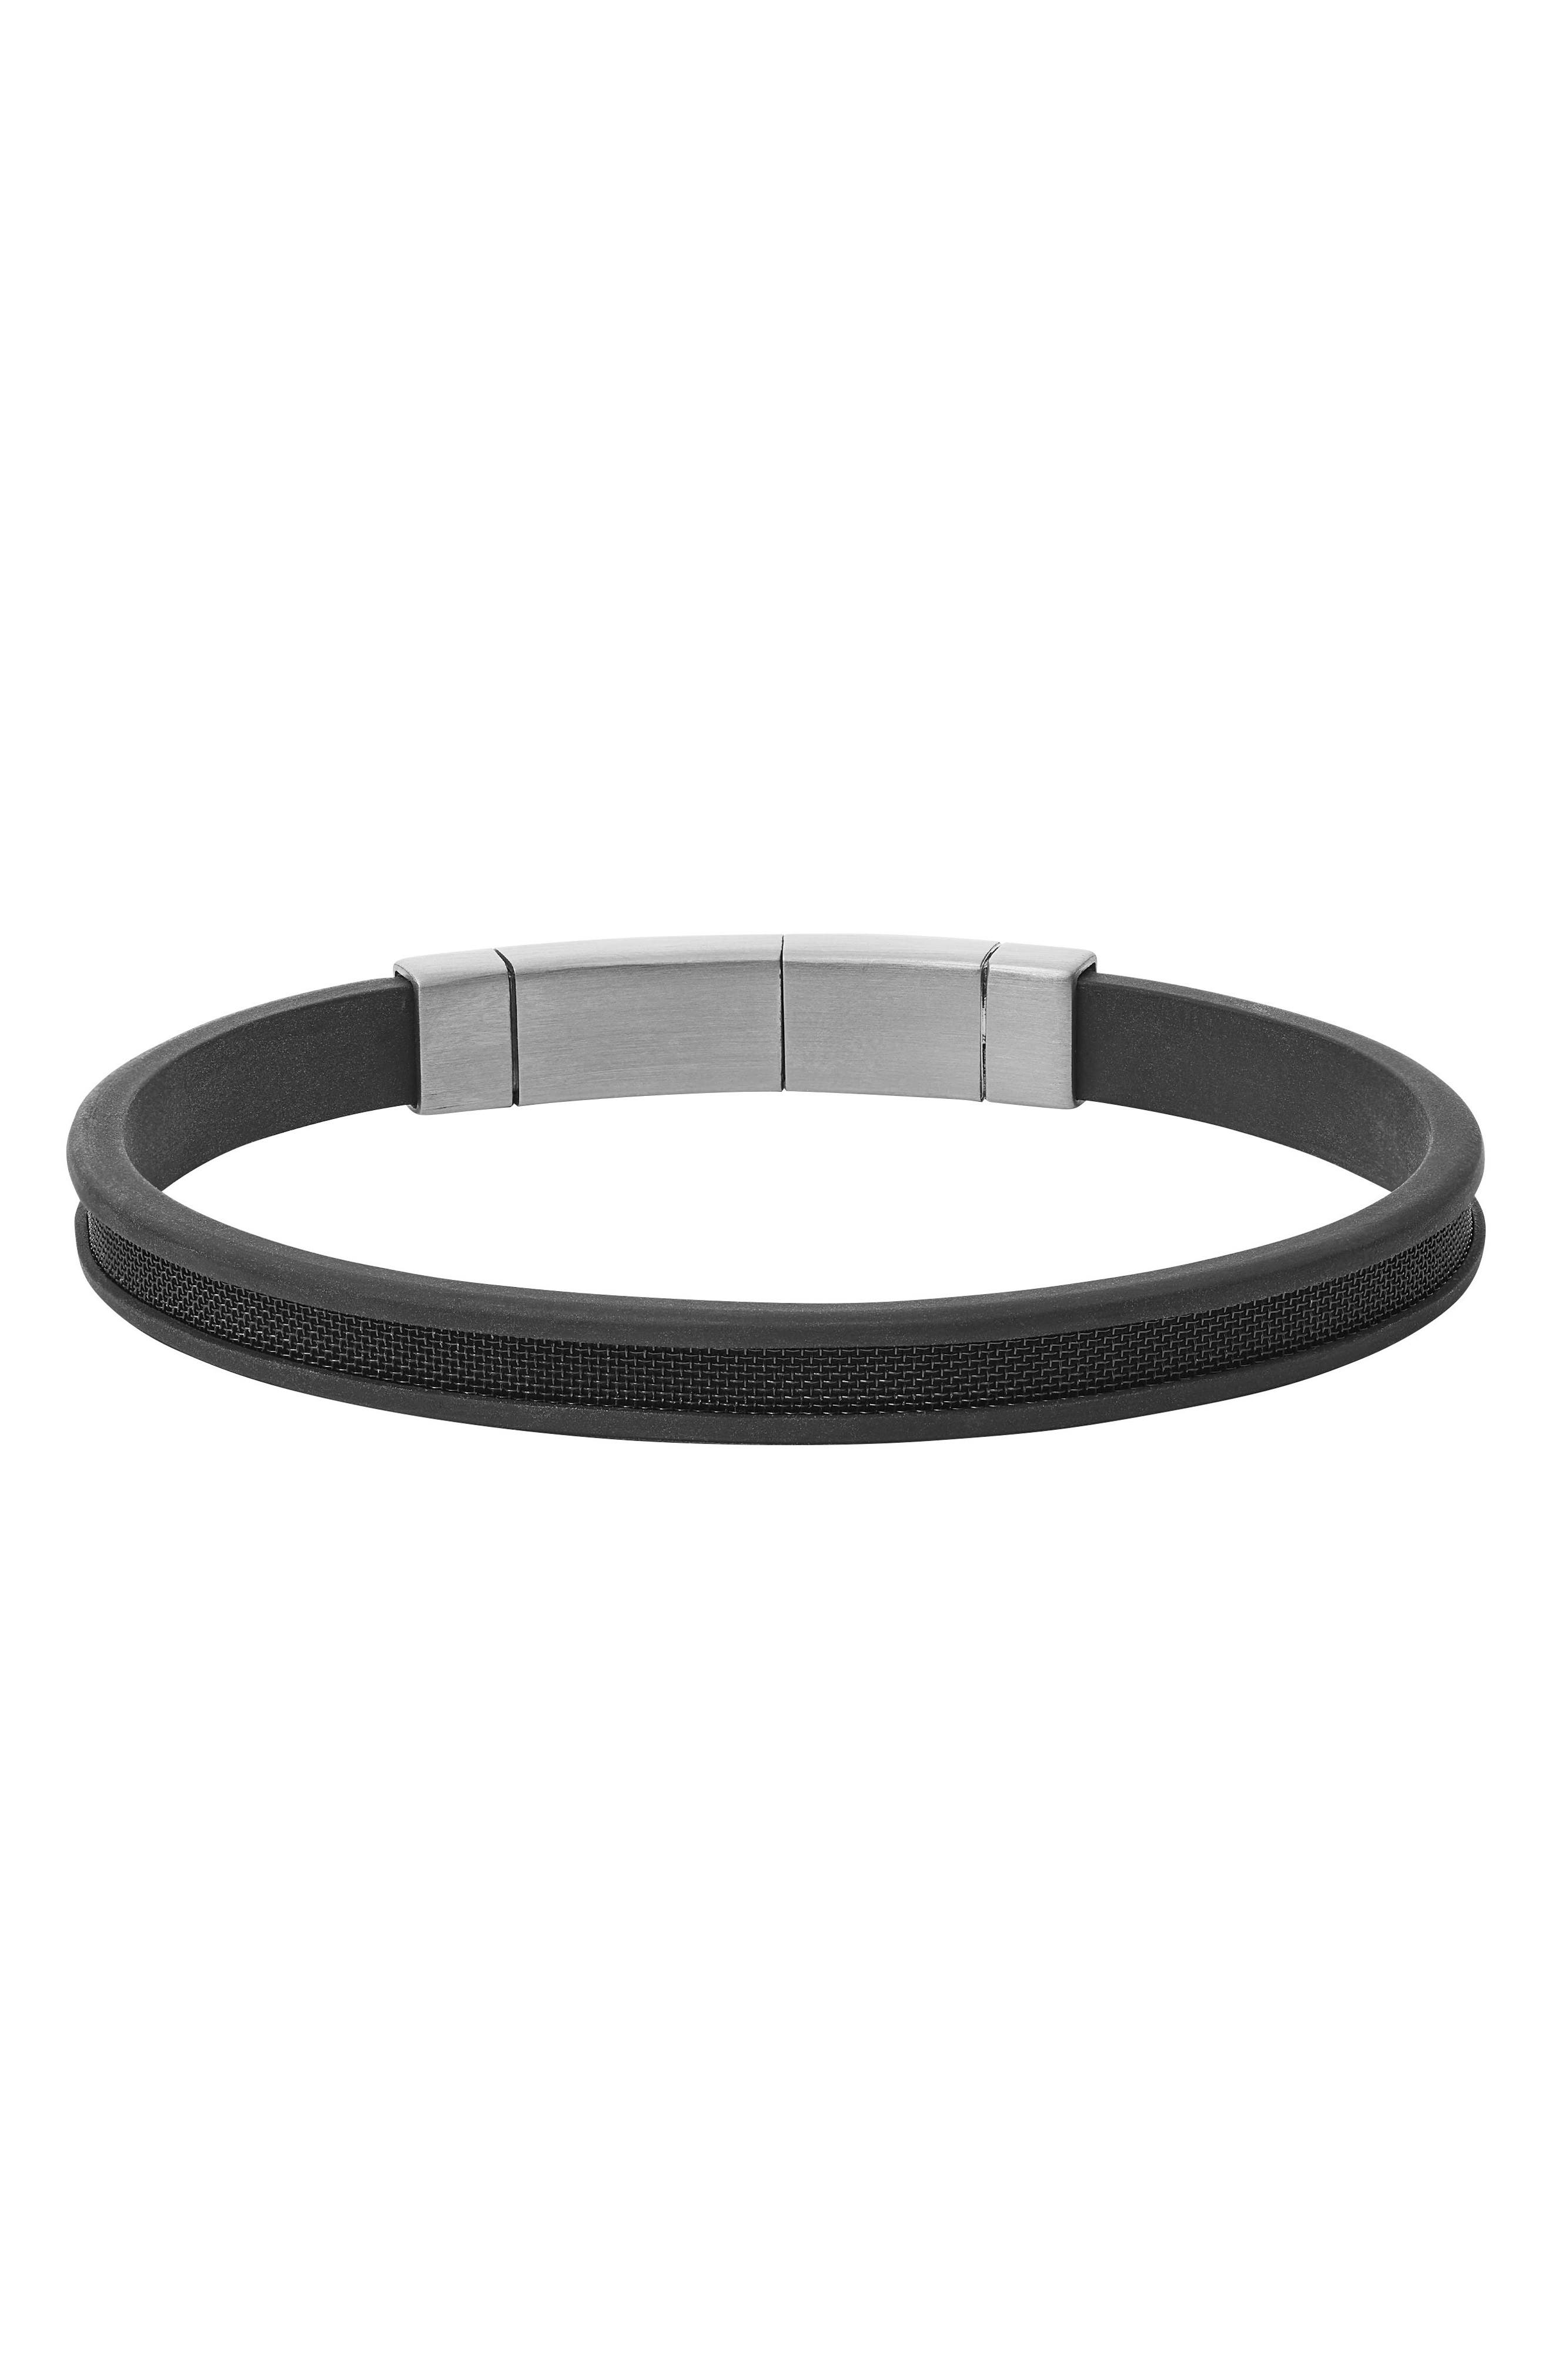 Alternate Image 1 Selected - Skagen Kring Bracelet